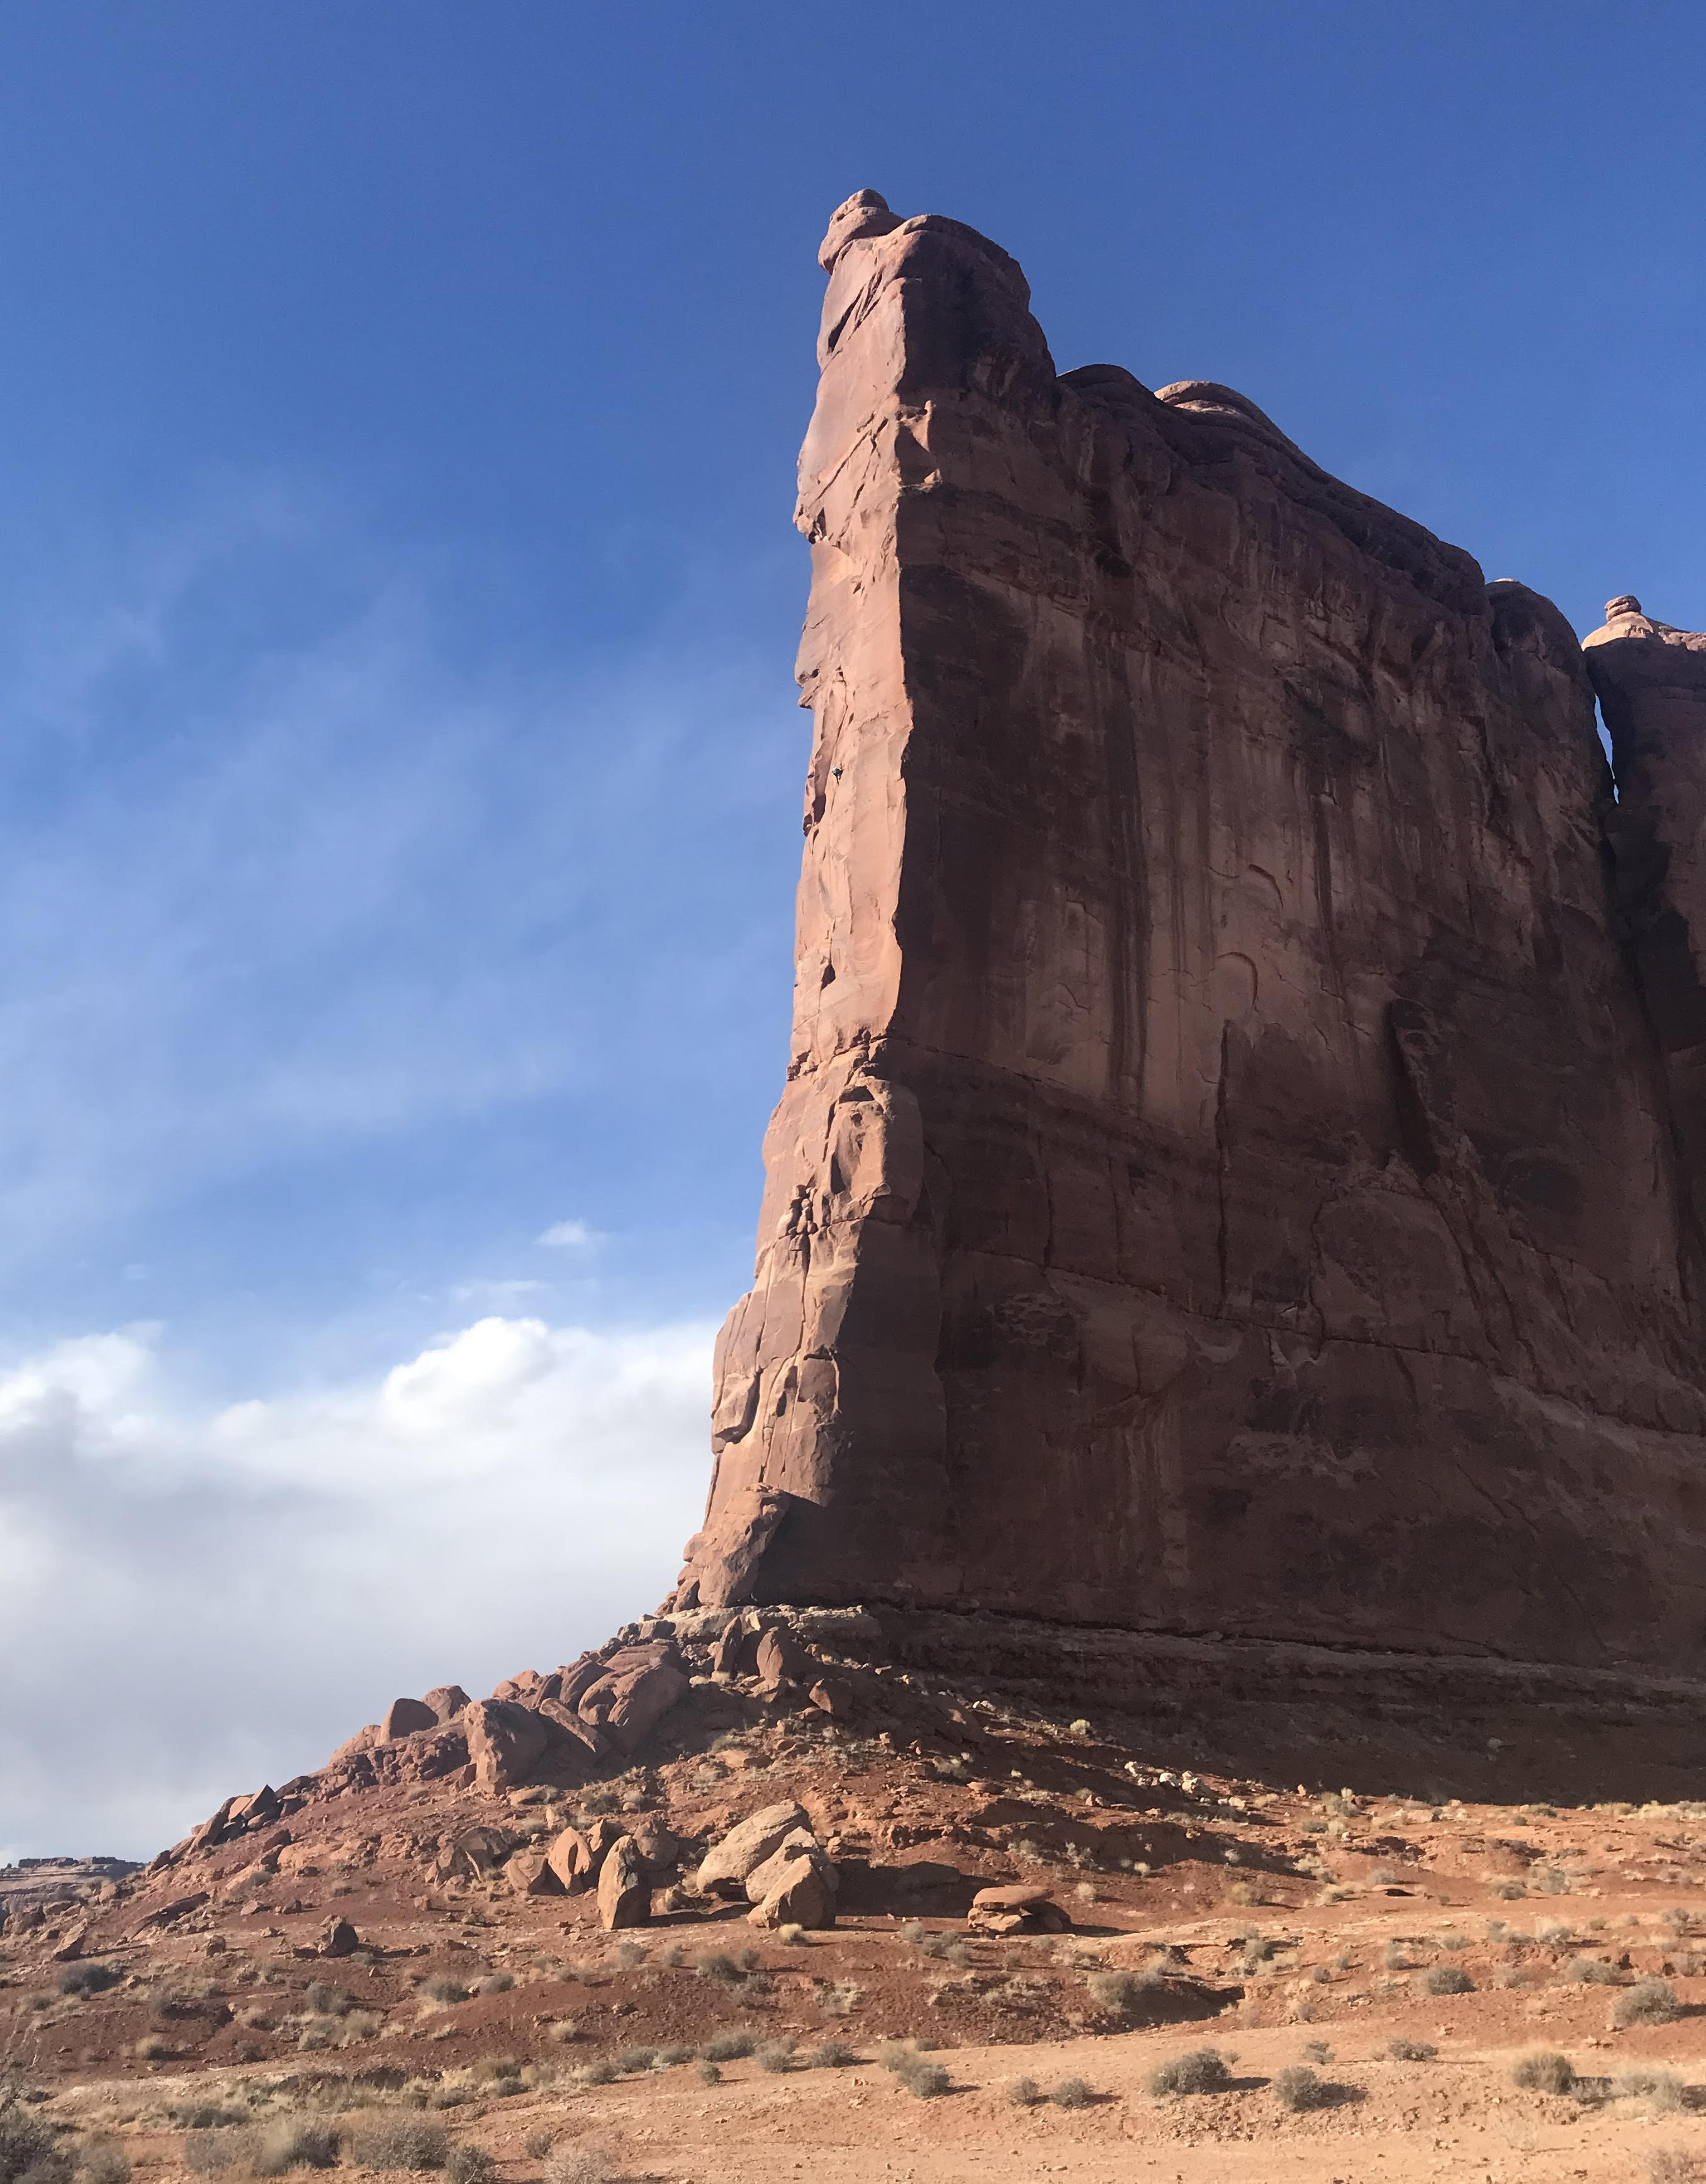 The author can be seen as a tiny dot in middle of the prow, halfway up the Tower of Babel in Arches National Park during his solo ascent of Zenyatta Entrada (5.8 C3-, 450') in February (Anasazi, Hopi, Navajo, Ouray, Paiute, Uintah, Ute, Zuni land). [Photo] Mikenna Clokey